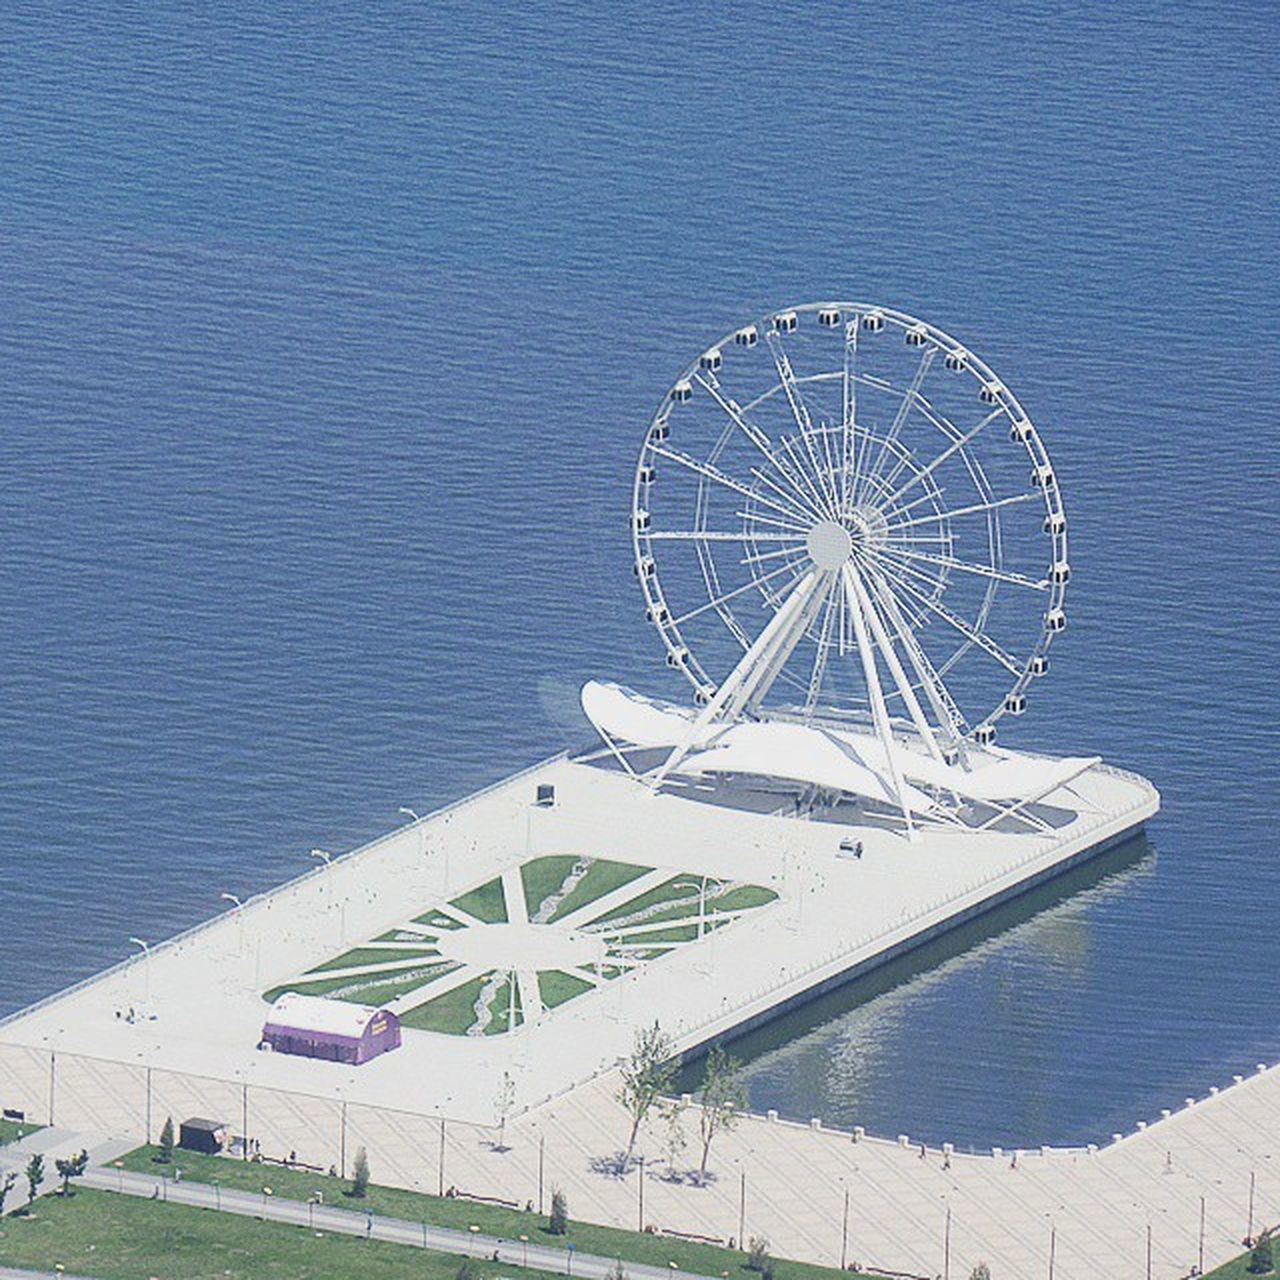 sea, beach, ferris wheel, day, amusement park, nature, outdoors, built structure, water, no people, architecture, building exterior, horizon over water, sky, beauty in nature